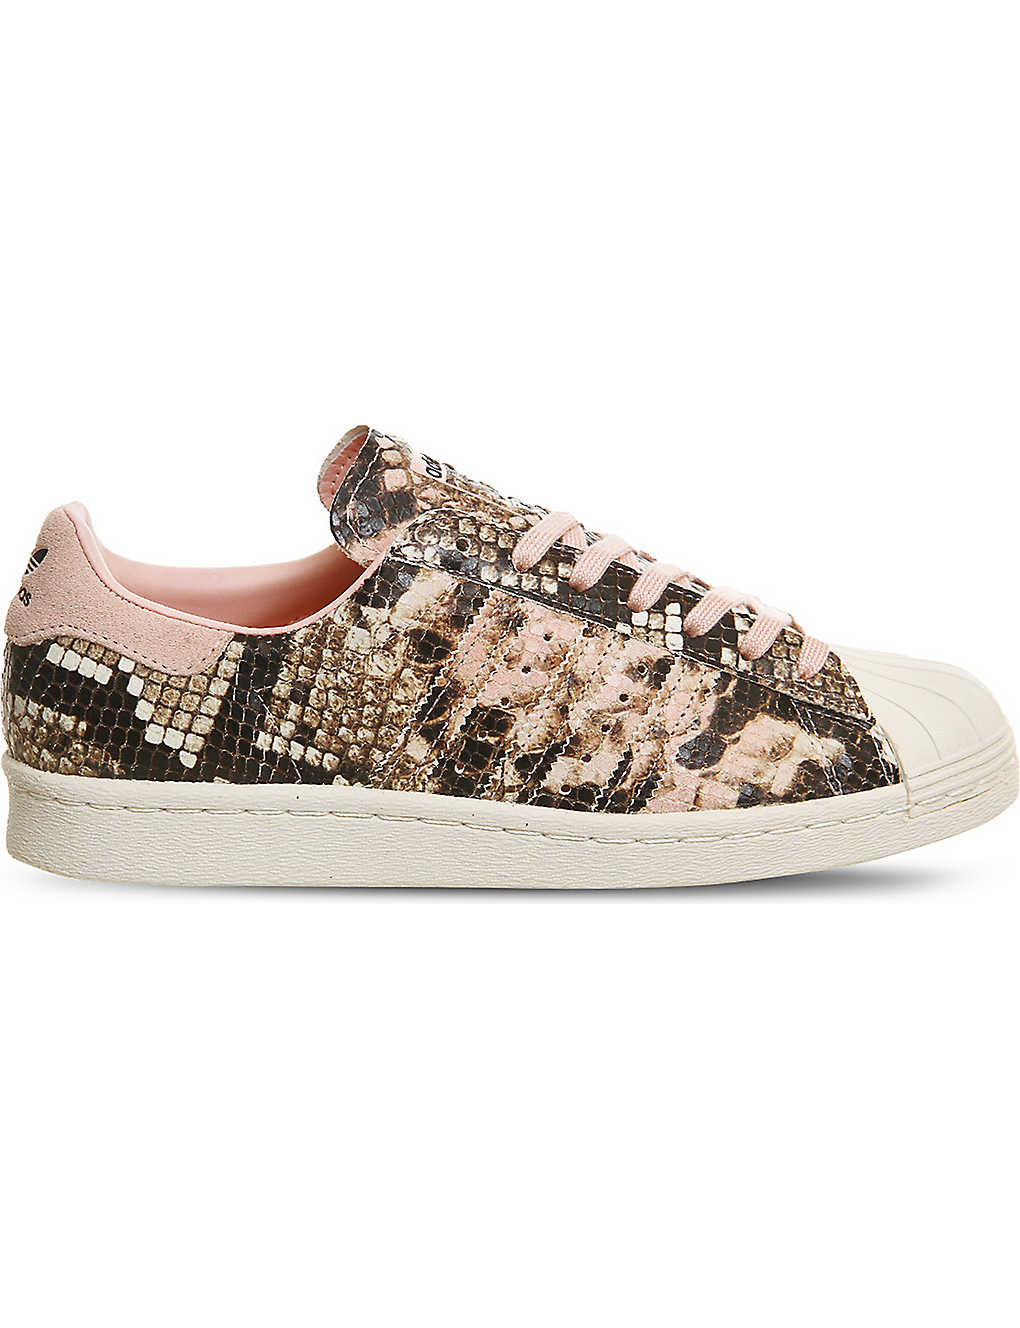 ADIDAS - Superstar 80s snake-effect leather trainers  d07fd3494373